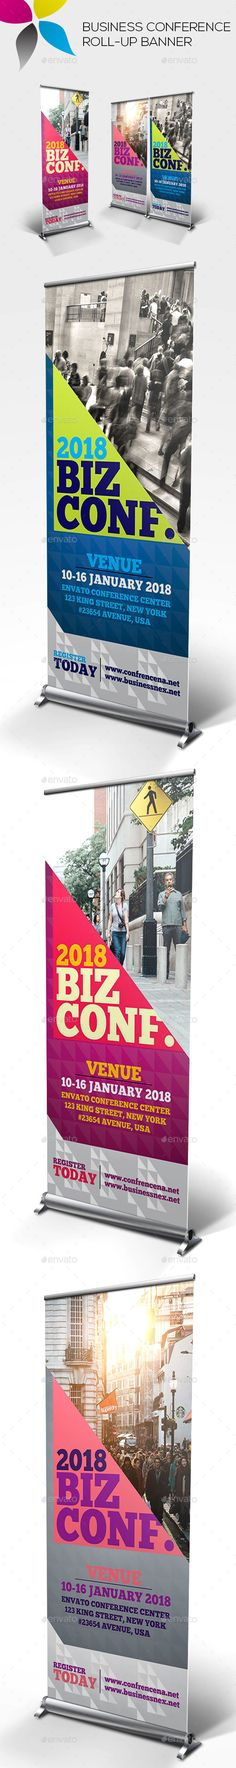 Business Conference Roll-up Banner Design Template - Signage Ads Banner Print Template PSD. Download here: https://graphicriver.net/item/business-conference-rollup-banner/19318960?ref=yinkira